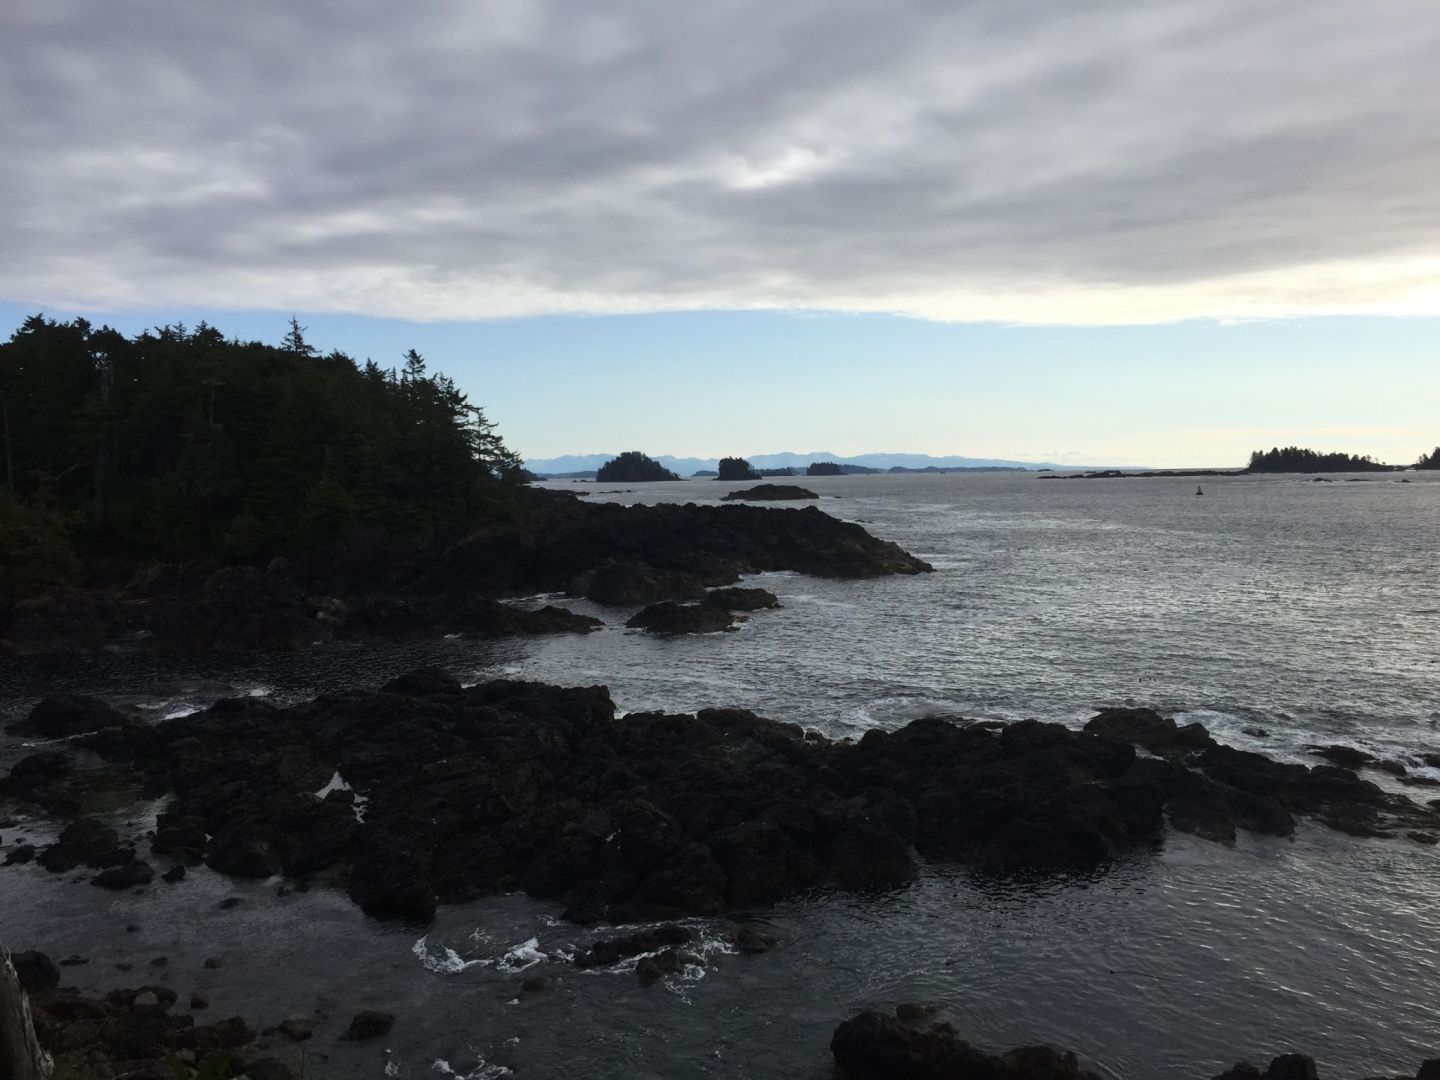 Lookout from the Wild Pacific Trail on Vancouver Island